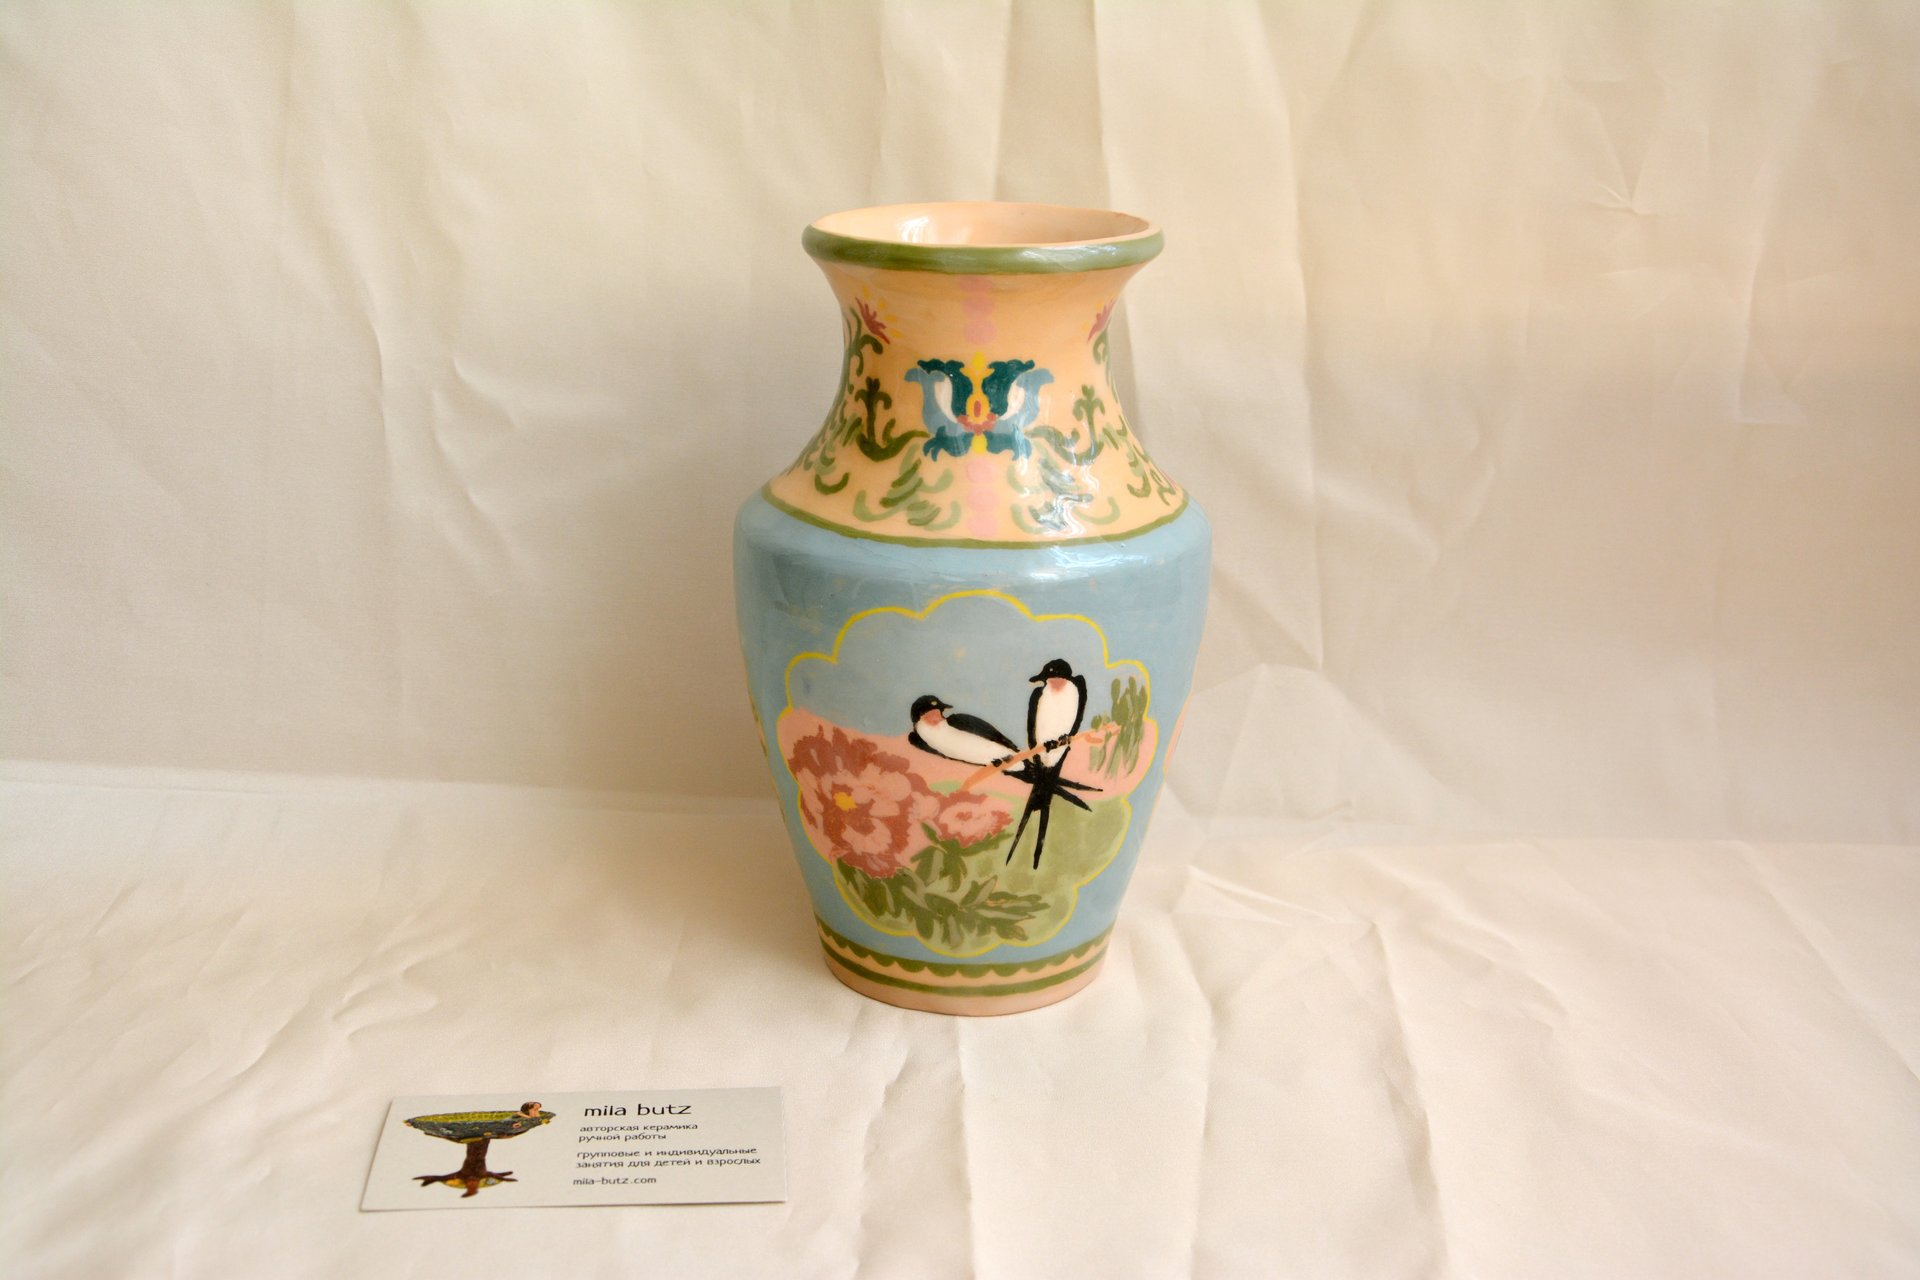 Ceramic classic vase with hand-painted swallows, height  - 18 cm, photo 2 of 5.